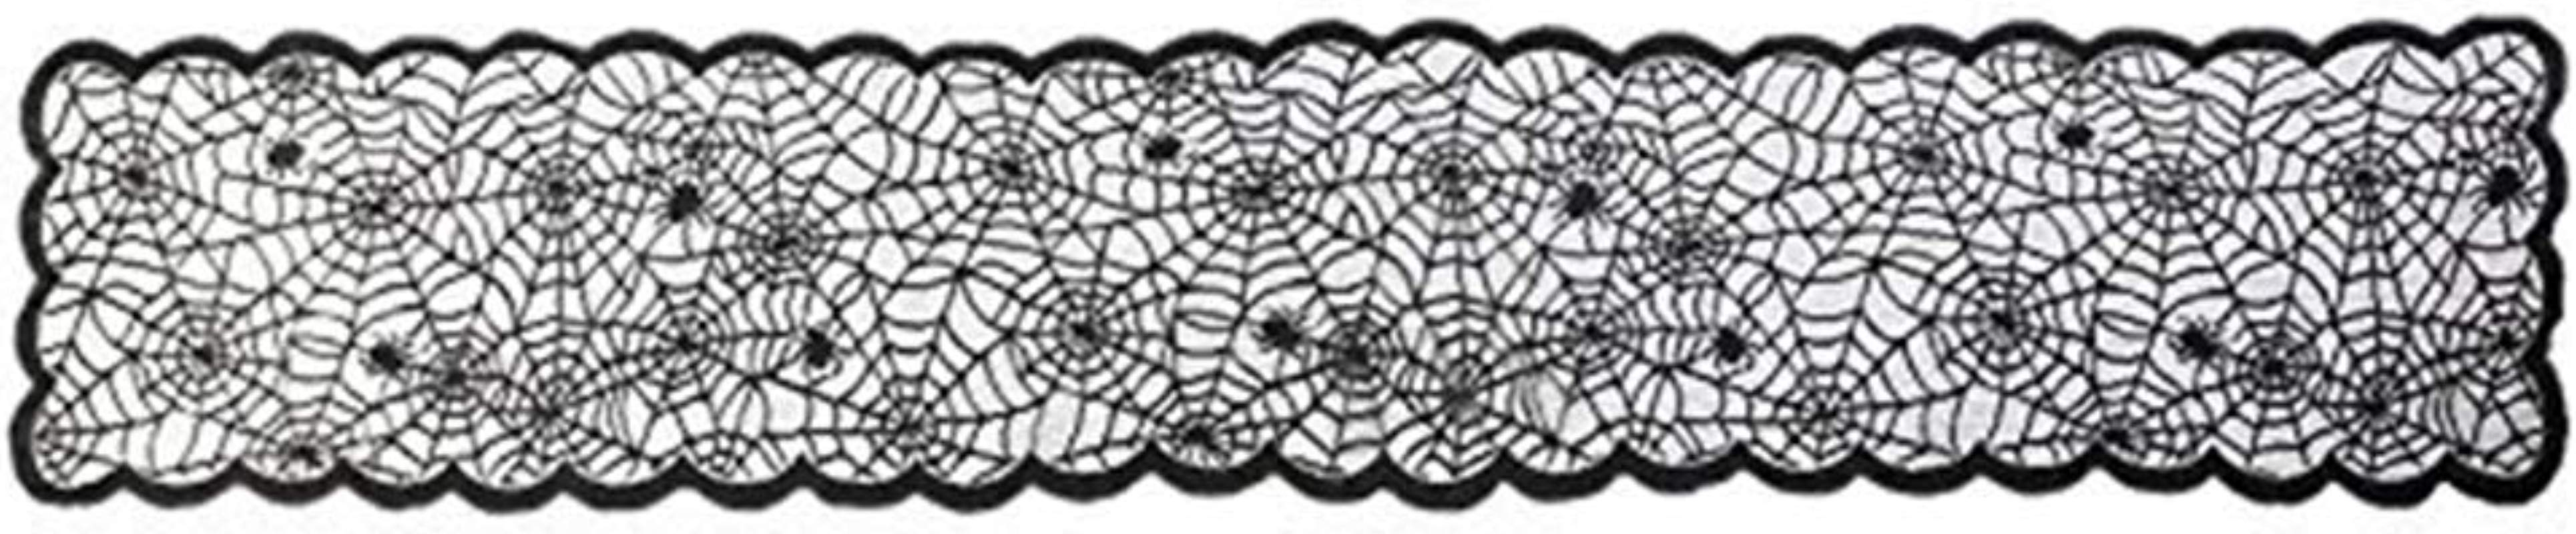 Discountstore145 Halloween Table Runner Halloween Create The Ambience Props Lace Spider Web Table Runner Cloth Cover For Halloween Eve Decor Home Decoration Black